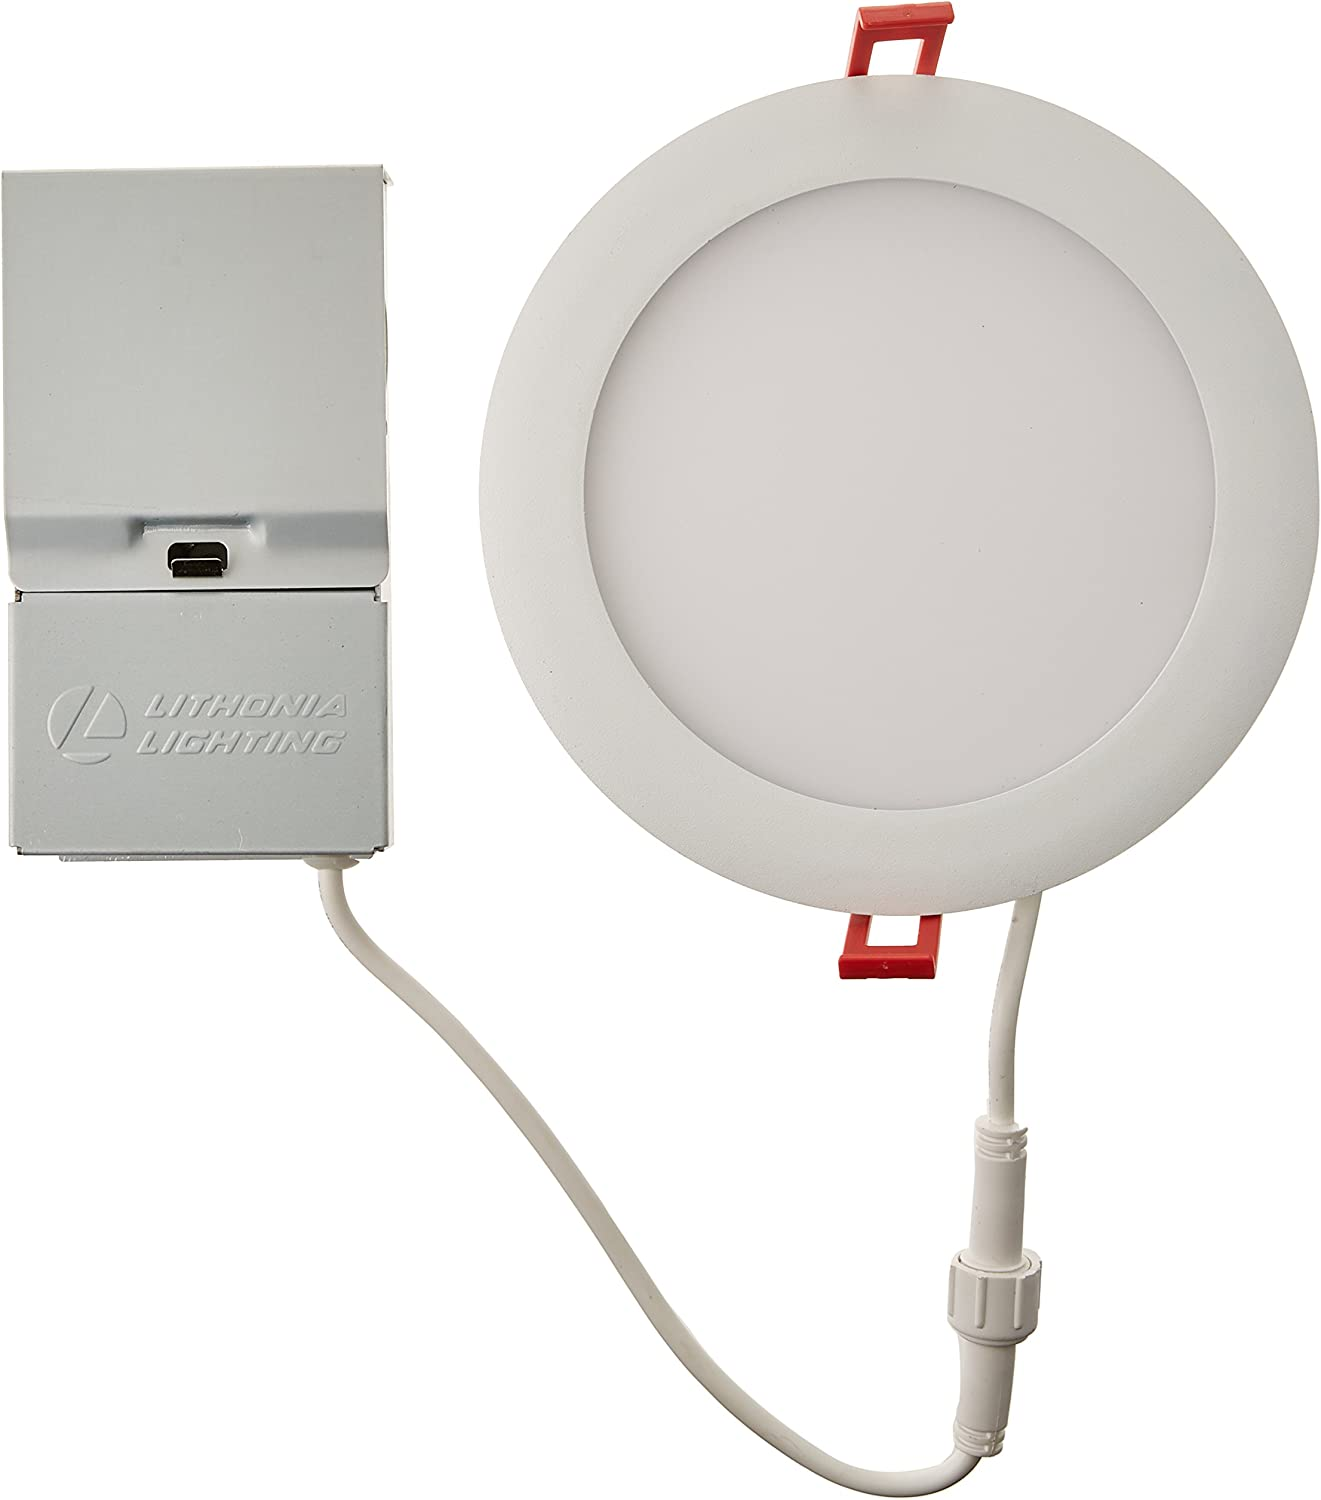 Lithonia Lighting WF6 LL LED 40K MW M6 Ultra-Thin Dimmable LED Recessed Ceiling Light, 4000K | Cool White, Matte White